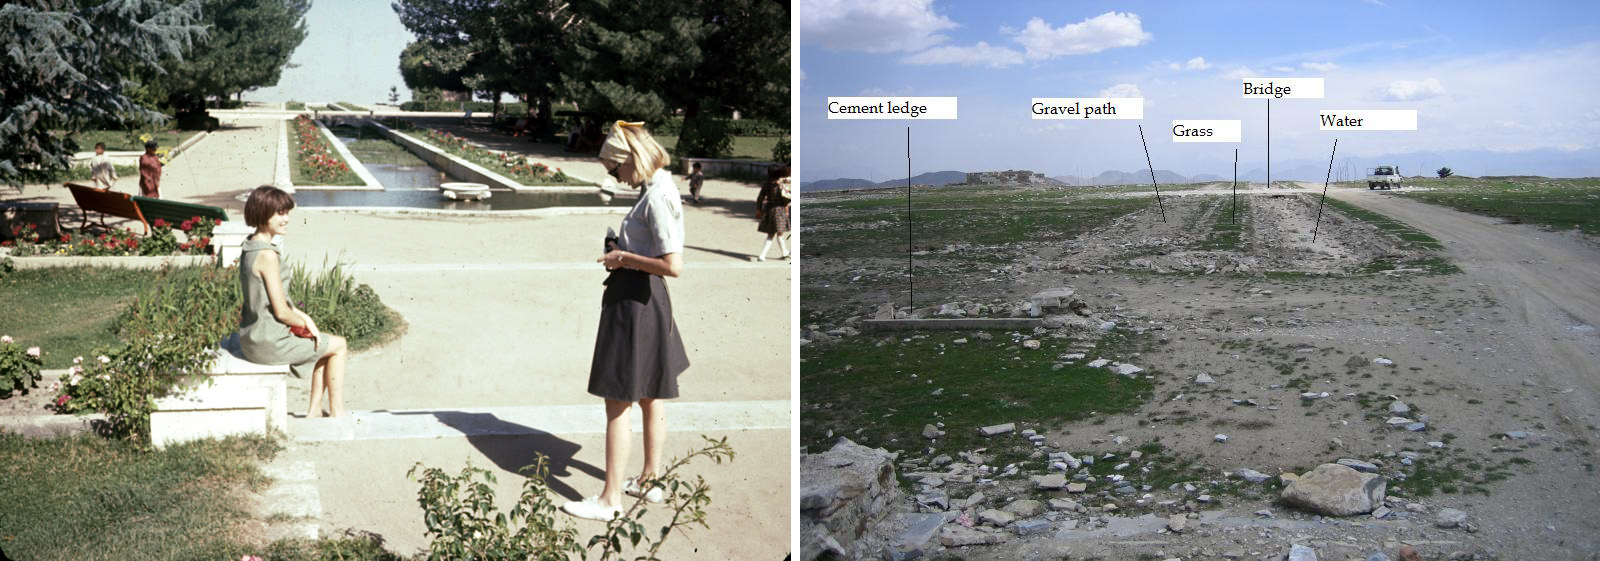 Paghman Gardens - Then & Now